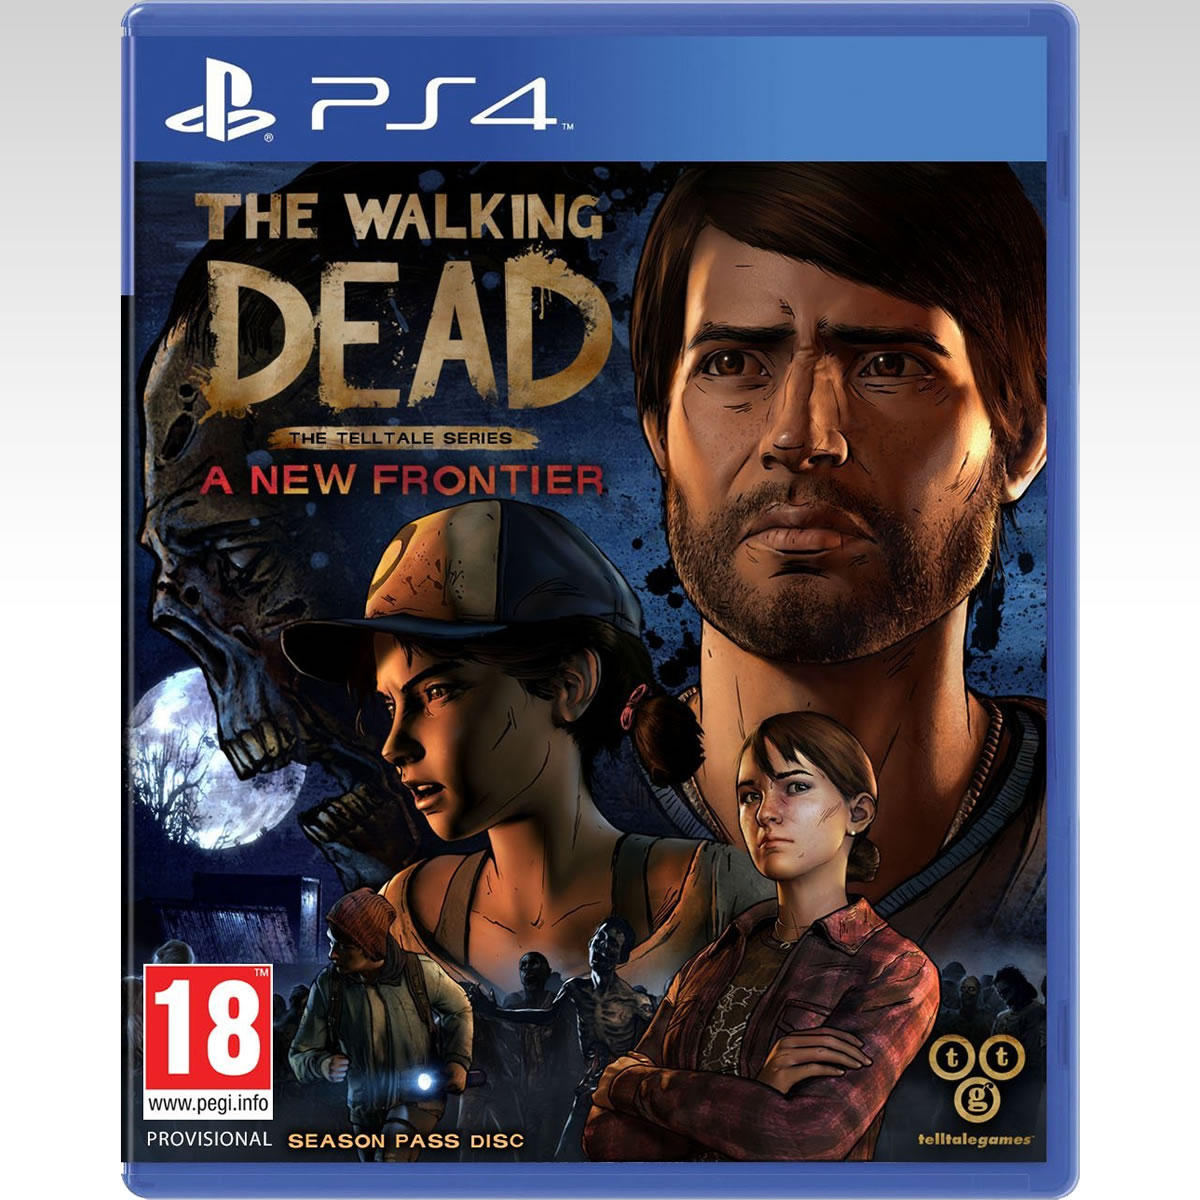 THE WALKING DEAD: THE TELLTALE SERIES: A NEW FRONTIER (PS4)